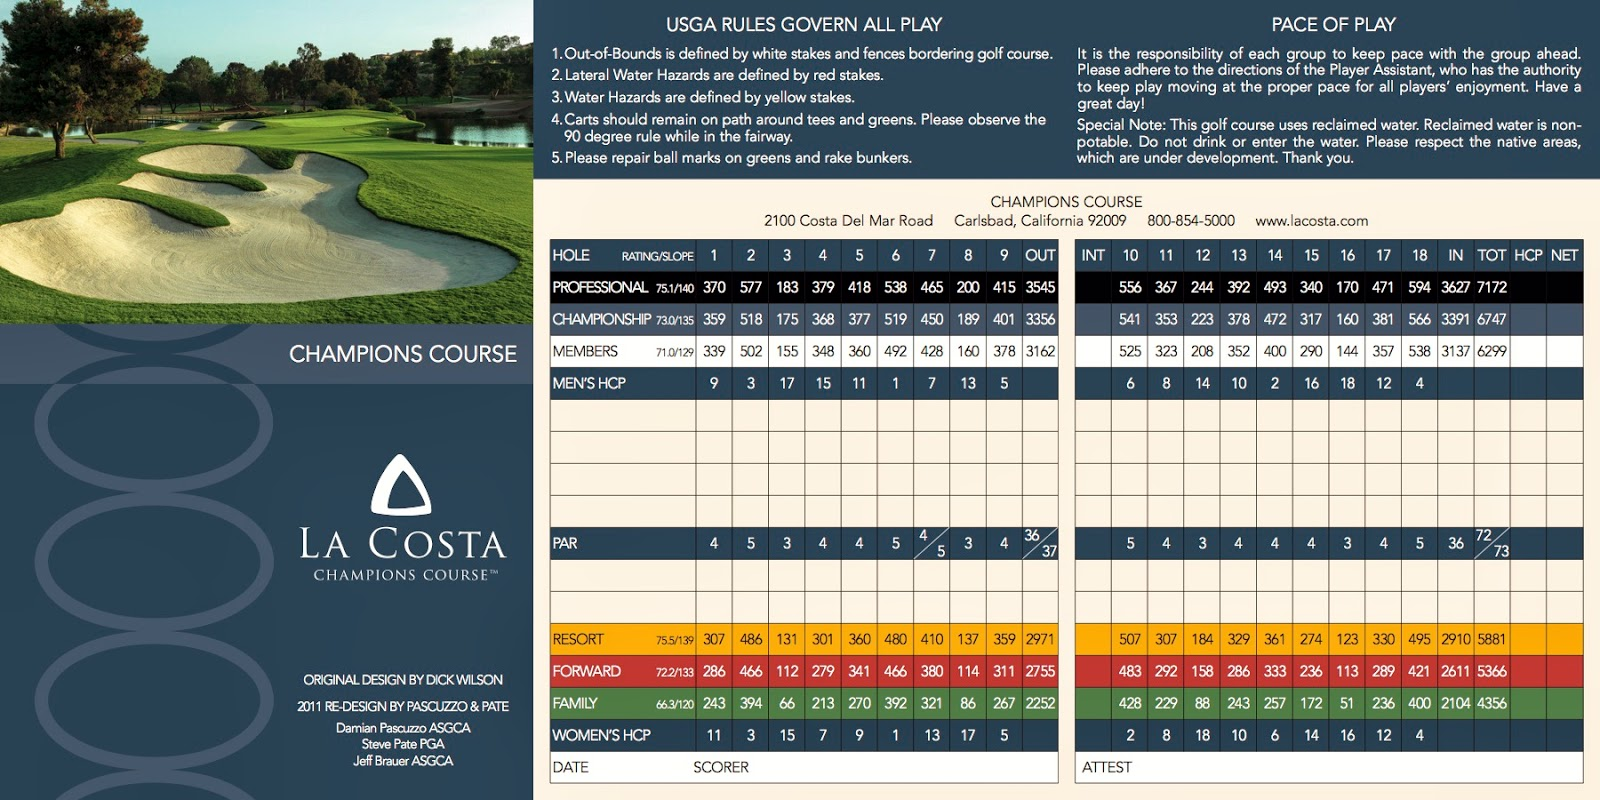 La Costa Champions Course Scorecard